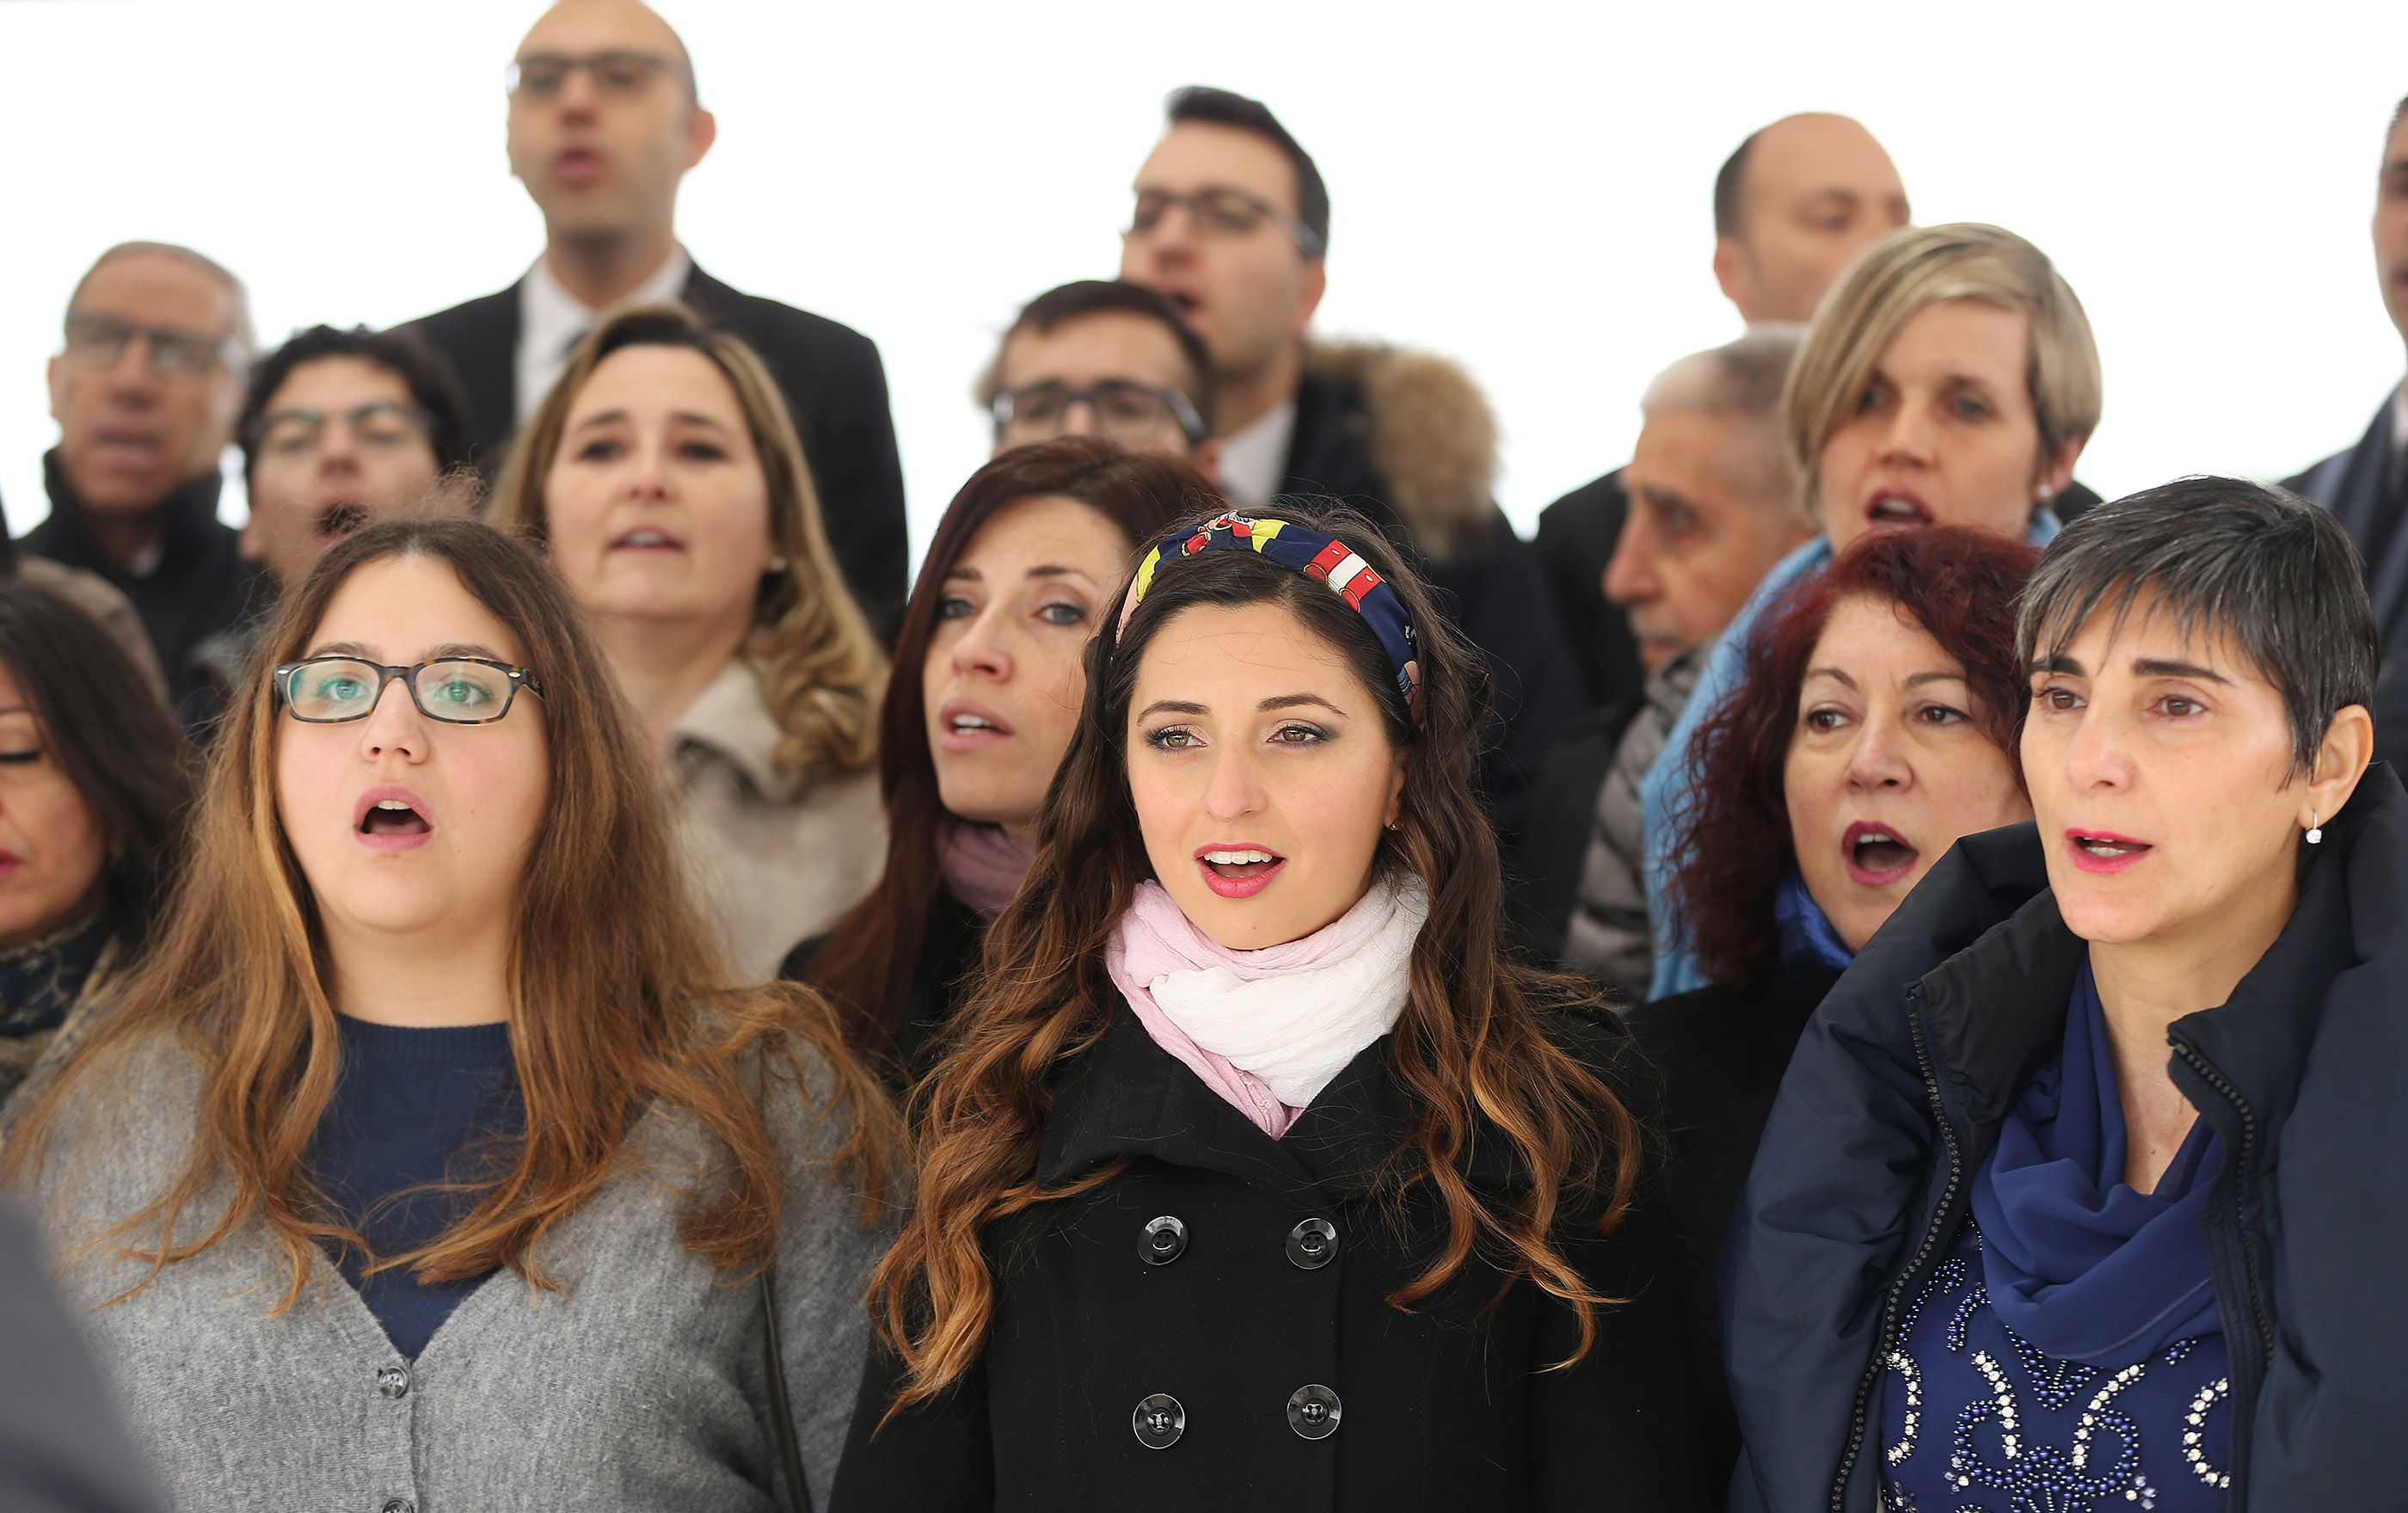 A choir sings at the cornerstone ceremony of the dedication of the Rome Italy Temple of The Church of Jesus Christ of Latter-day Saints in Rome, Italy, on Sunday, March 10, 2019.